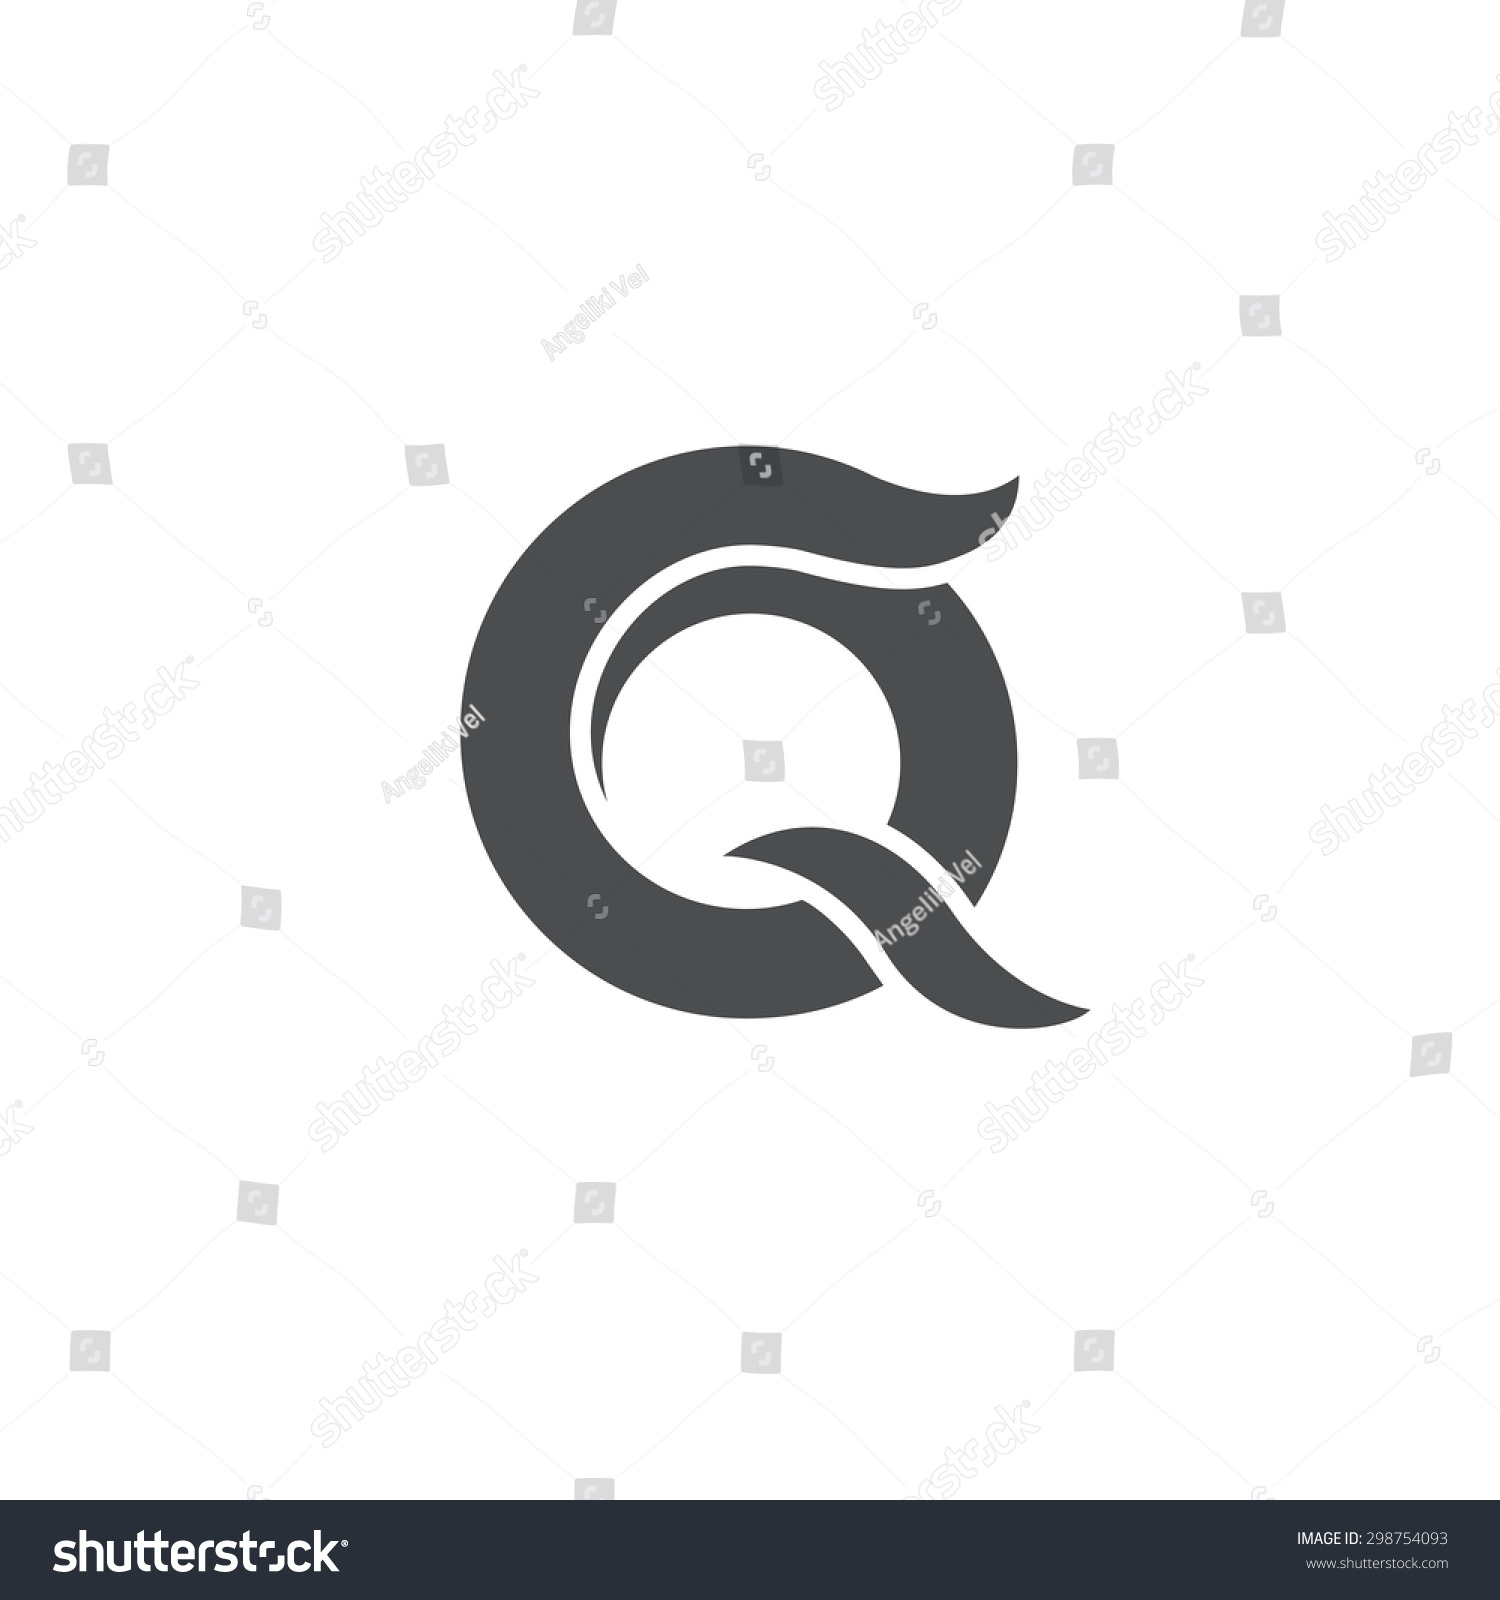 Letter Q Logo Symbol Vector Icon Stock Vector 298754093